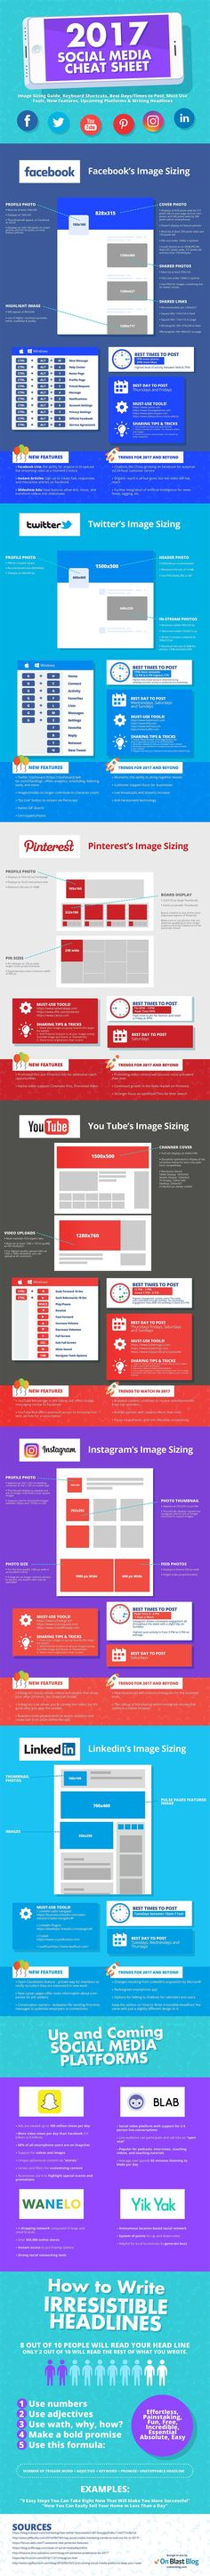 With the infographic below, you'll access a 2017 version of social media image sizing, keyboard shortcuts, useful tools, platform updates, and headline best practices.